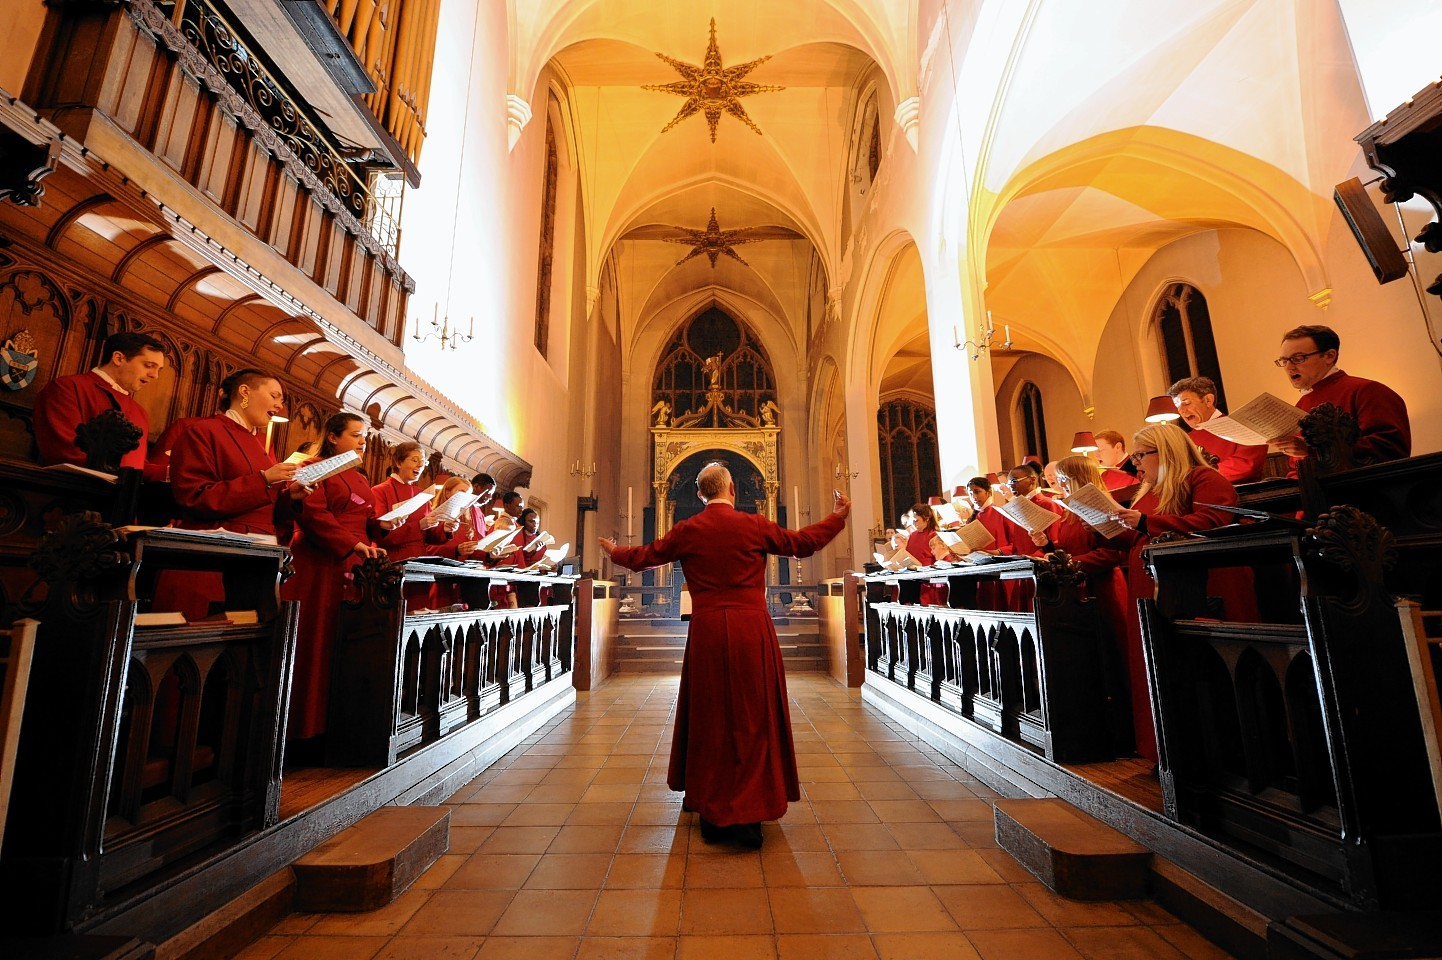 St Andrew's Cathedral, on King Street, hosted the annual Festival of Nine Lessons and Carols, a service featuring a mix of popular and historic Christian hymns. Credit: Kenny Elrick.